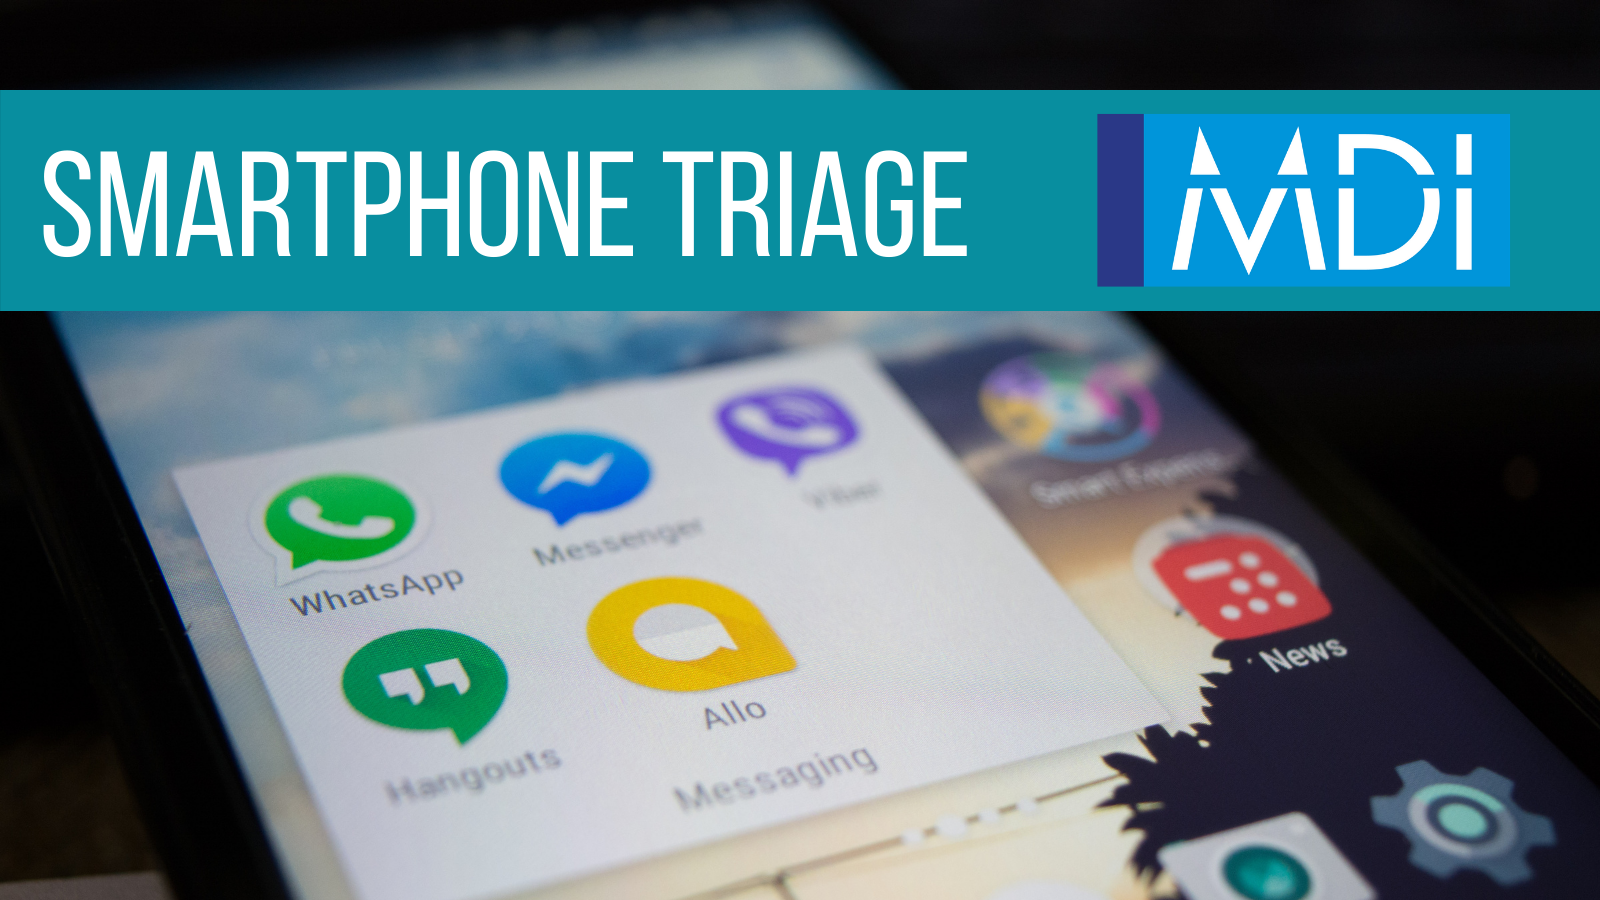 The Best Smartphone Triage: Field or Lab